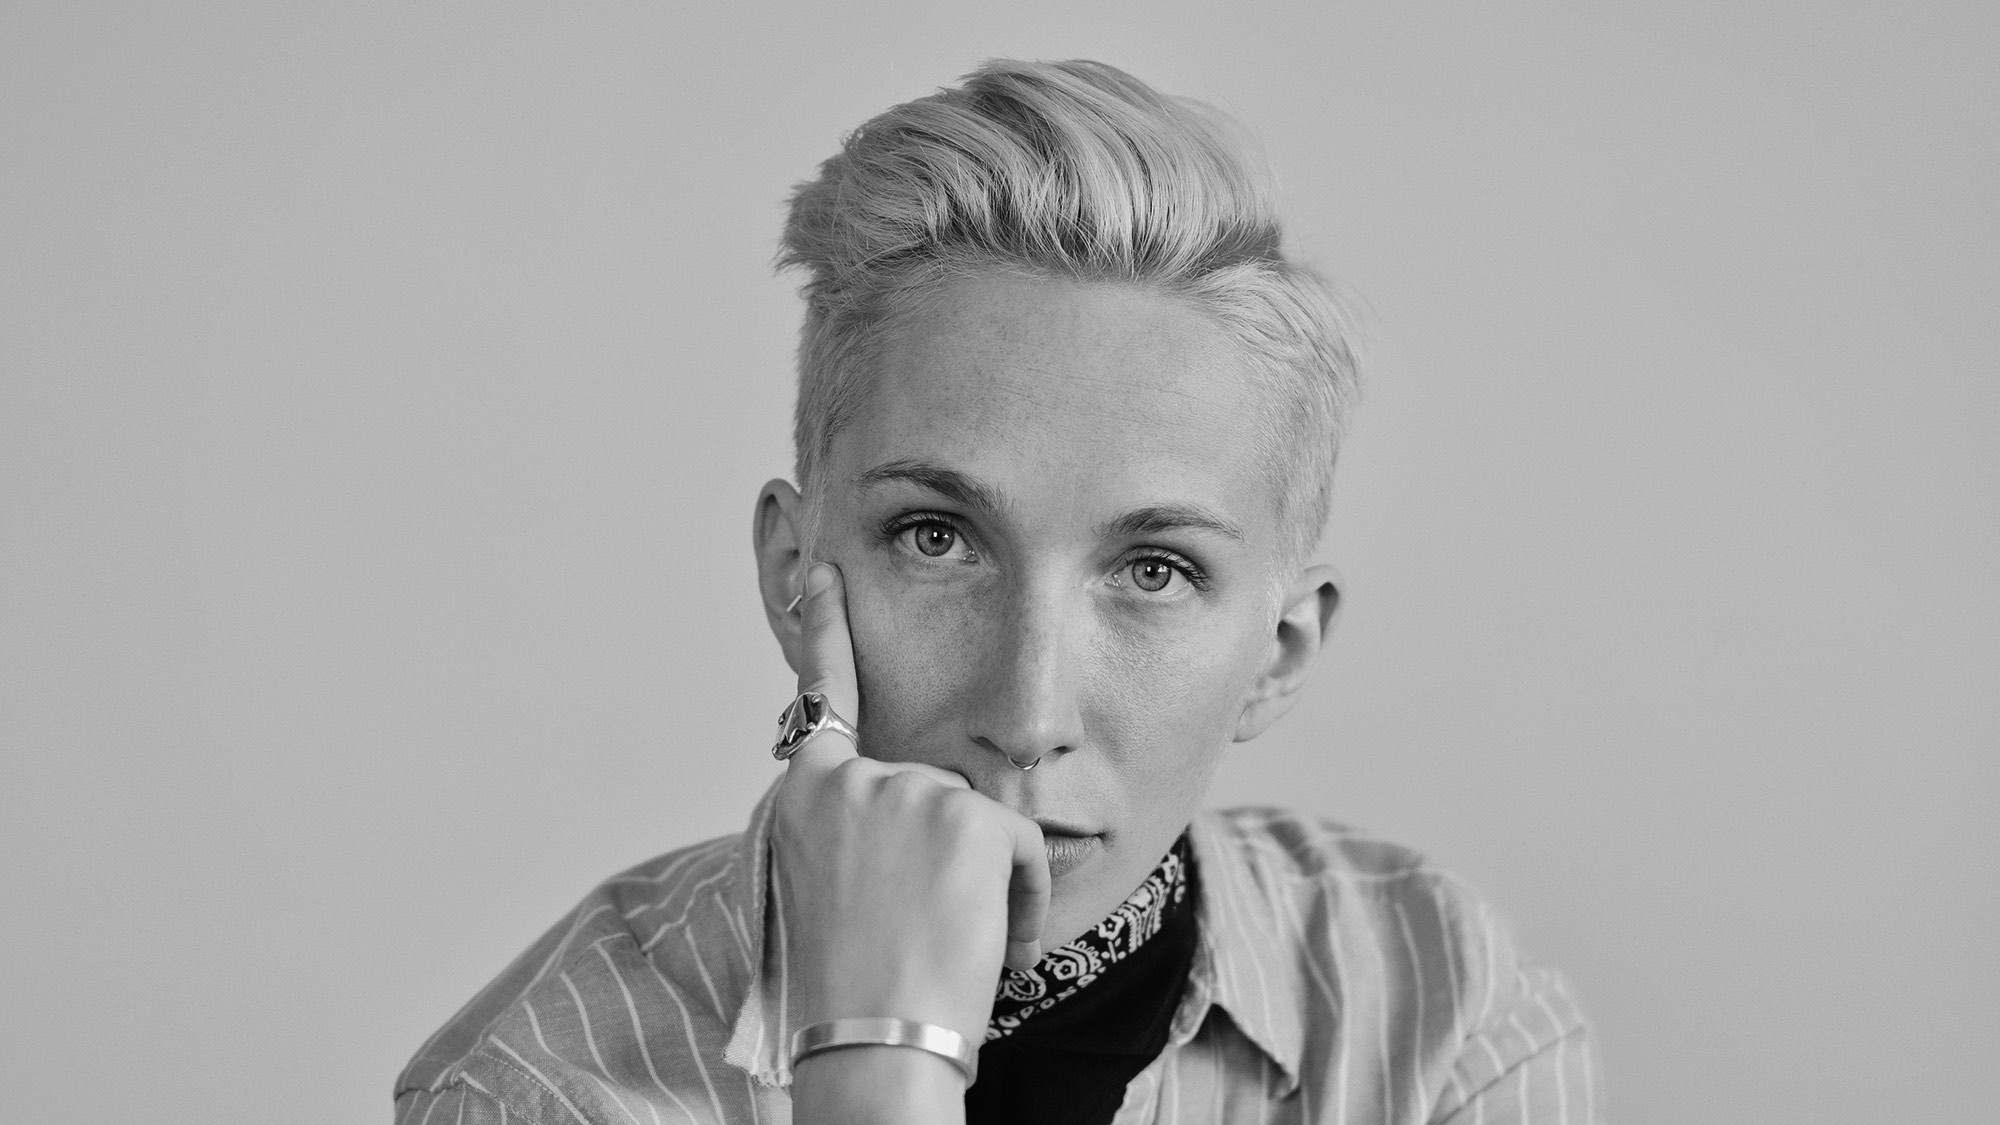 io tillett wright has identified as a boy, a girl, and a man, and traces his gender-fluid journey in a new memoir